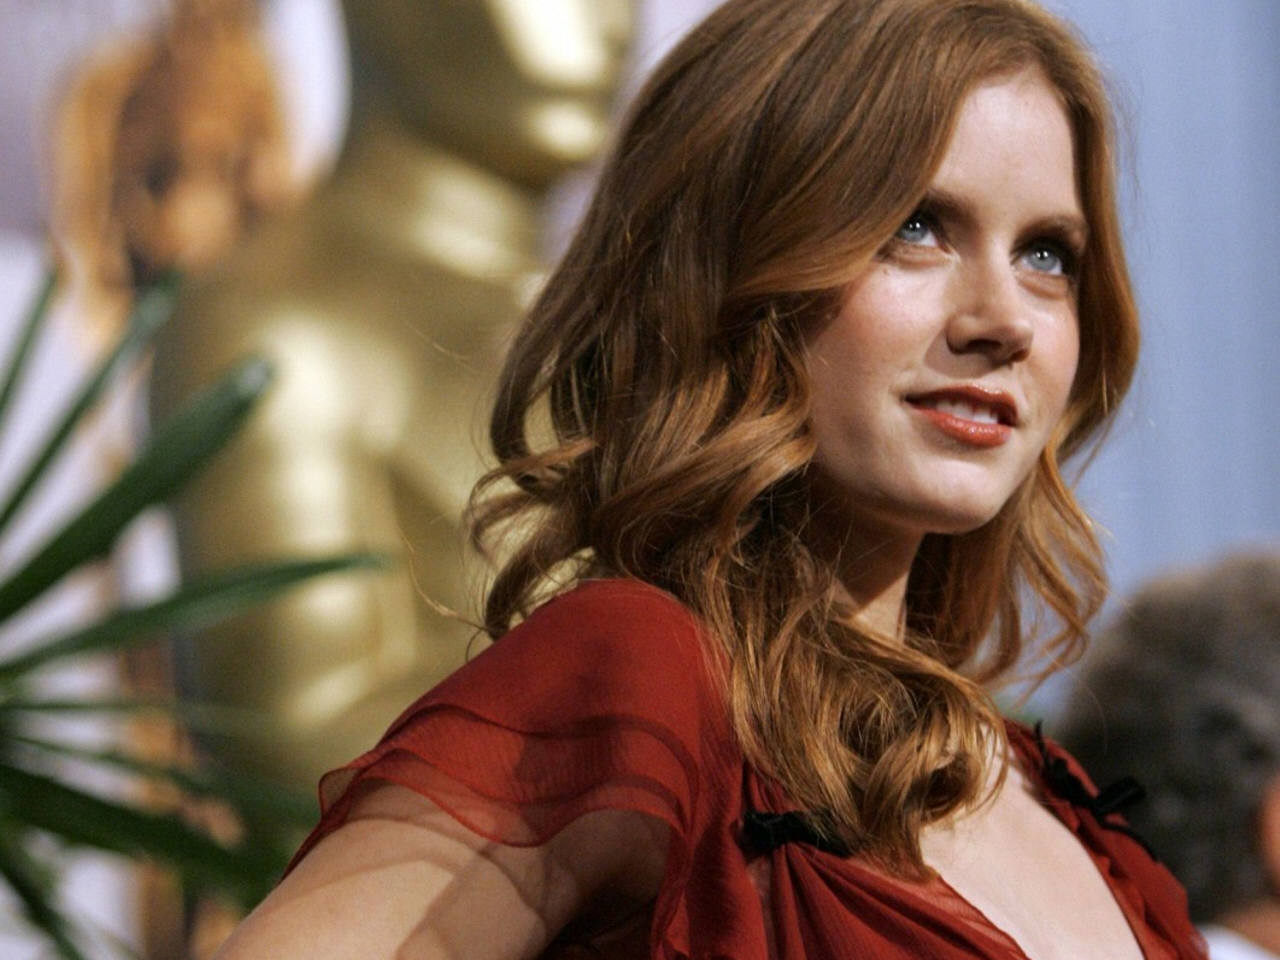 Amy Adams Hot i don't care how many times movies try to tell me otherwise